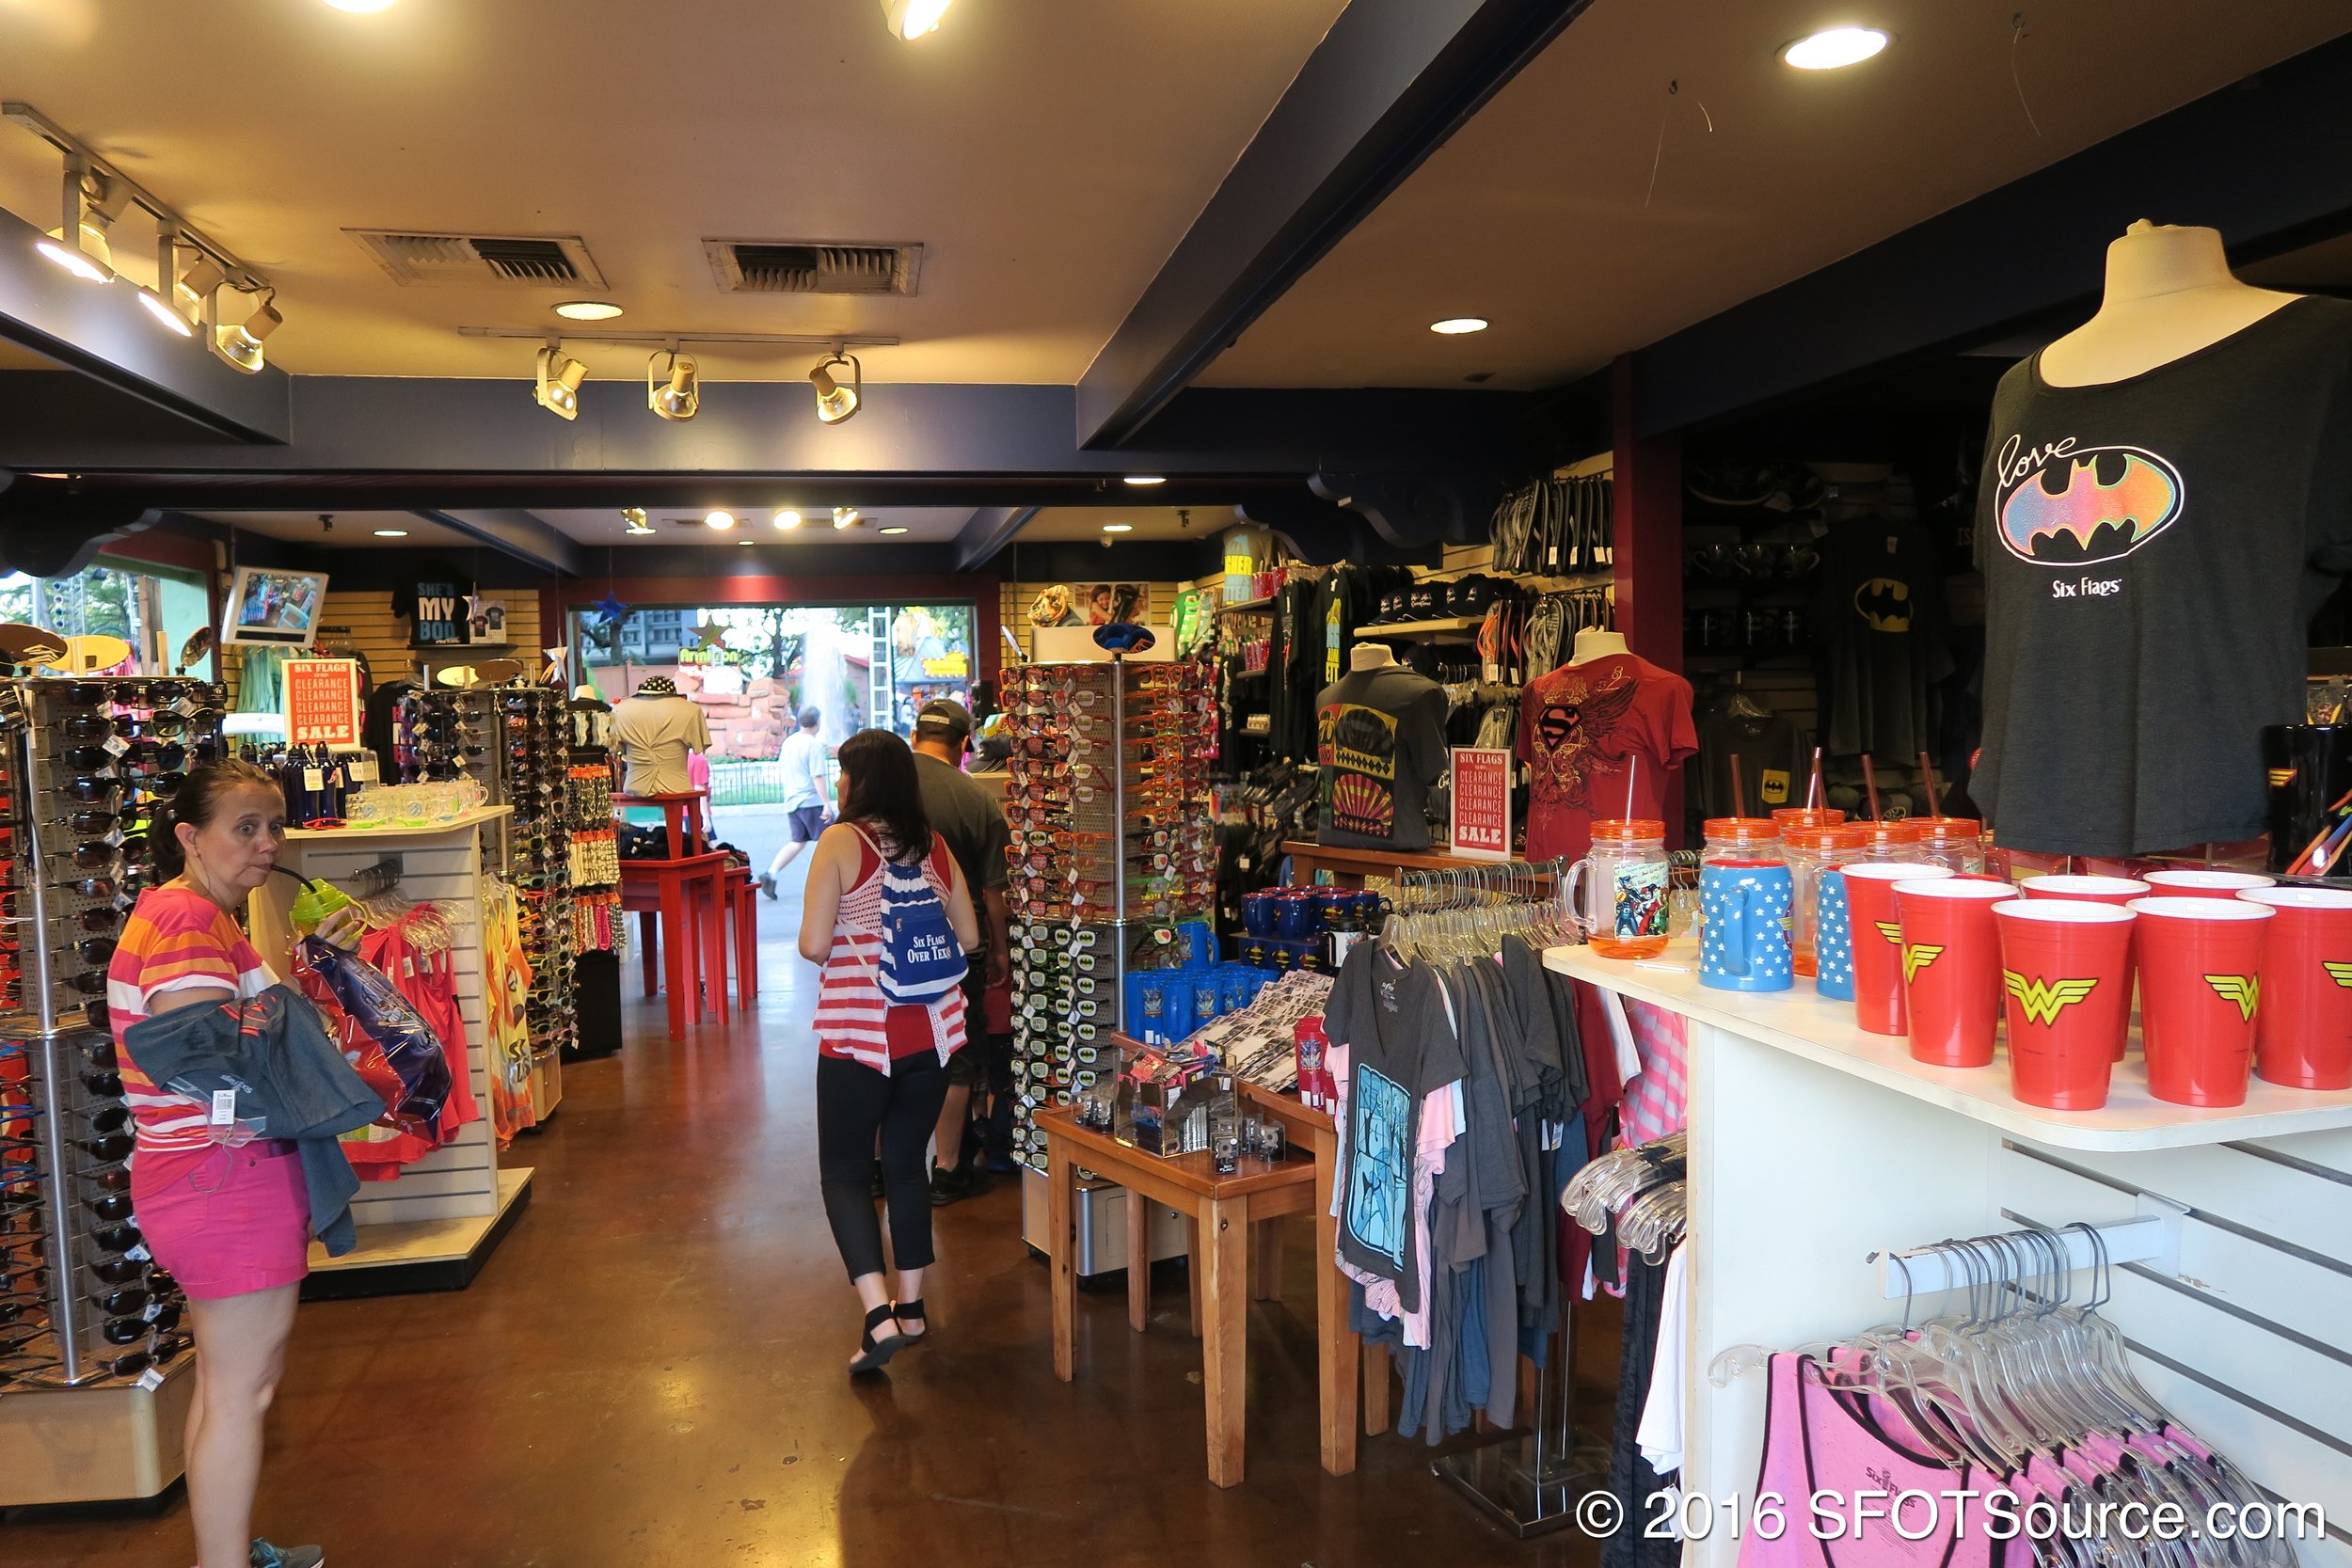 The shop features apparel, souvenirs, and other items.